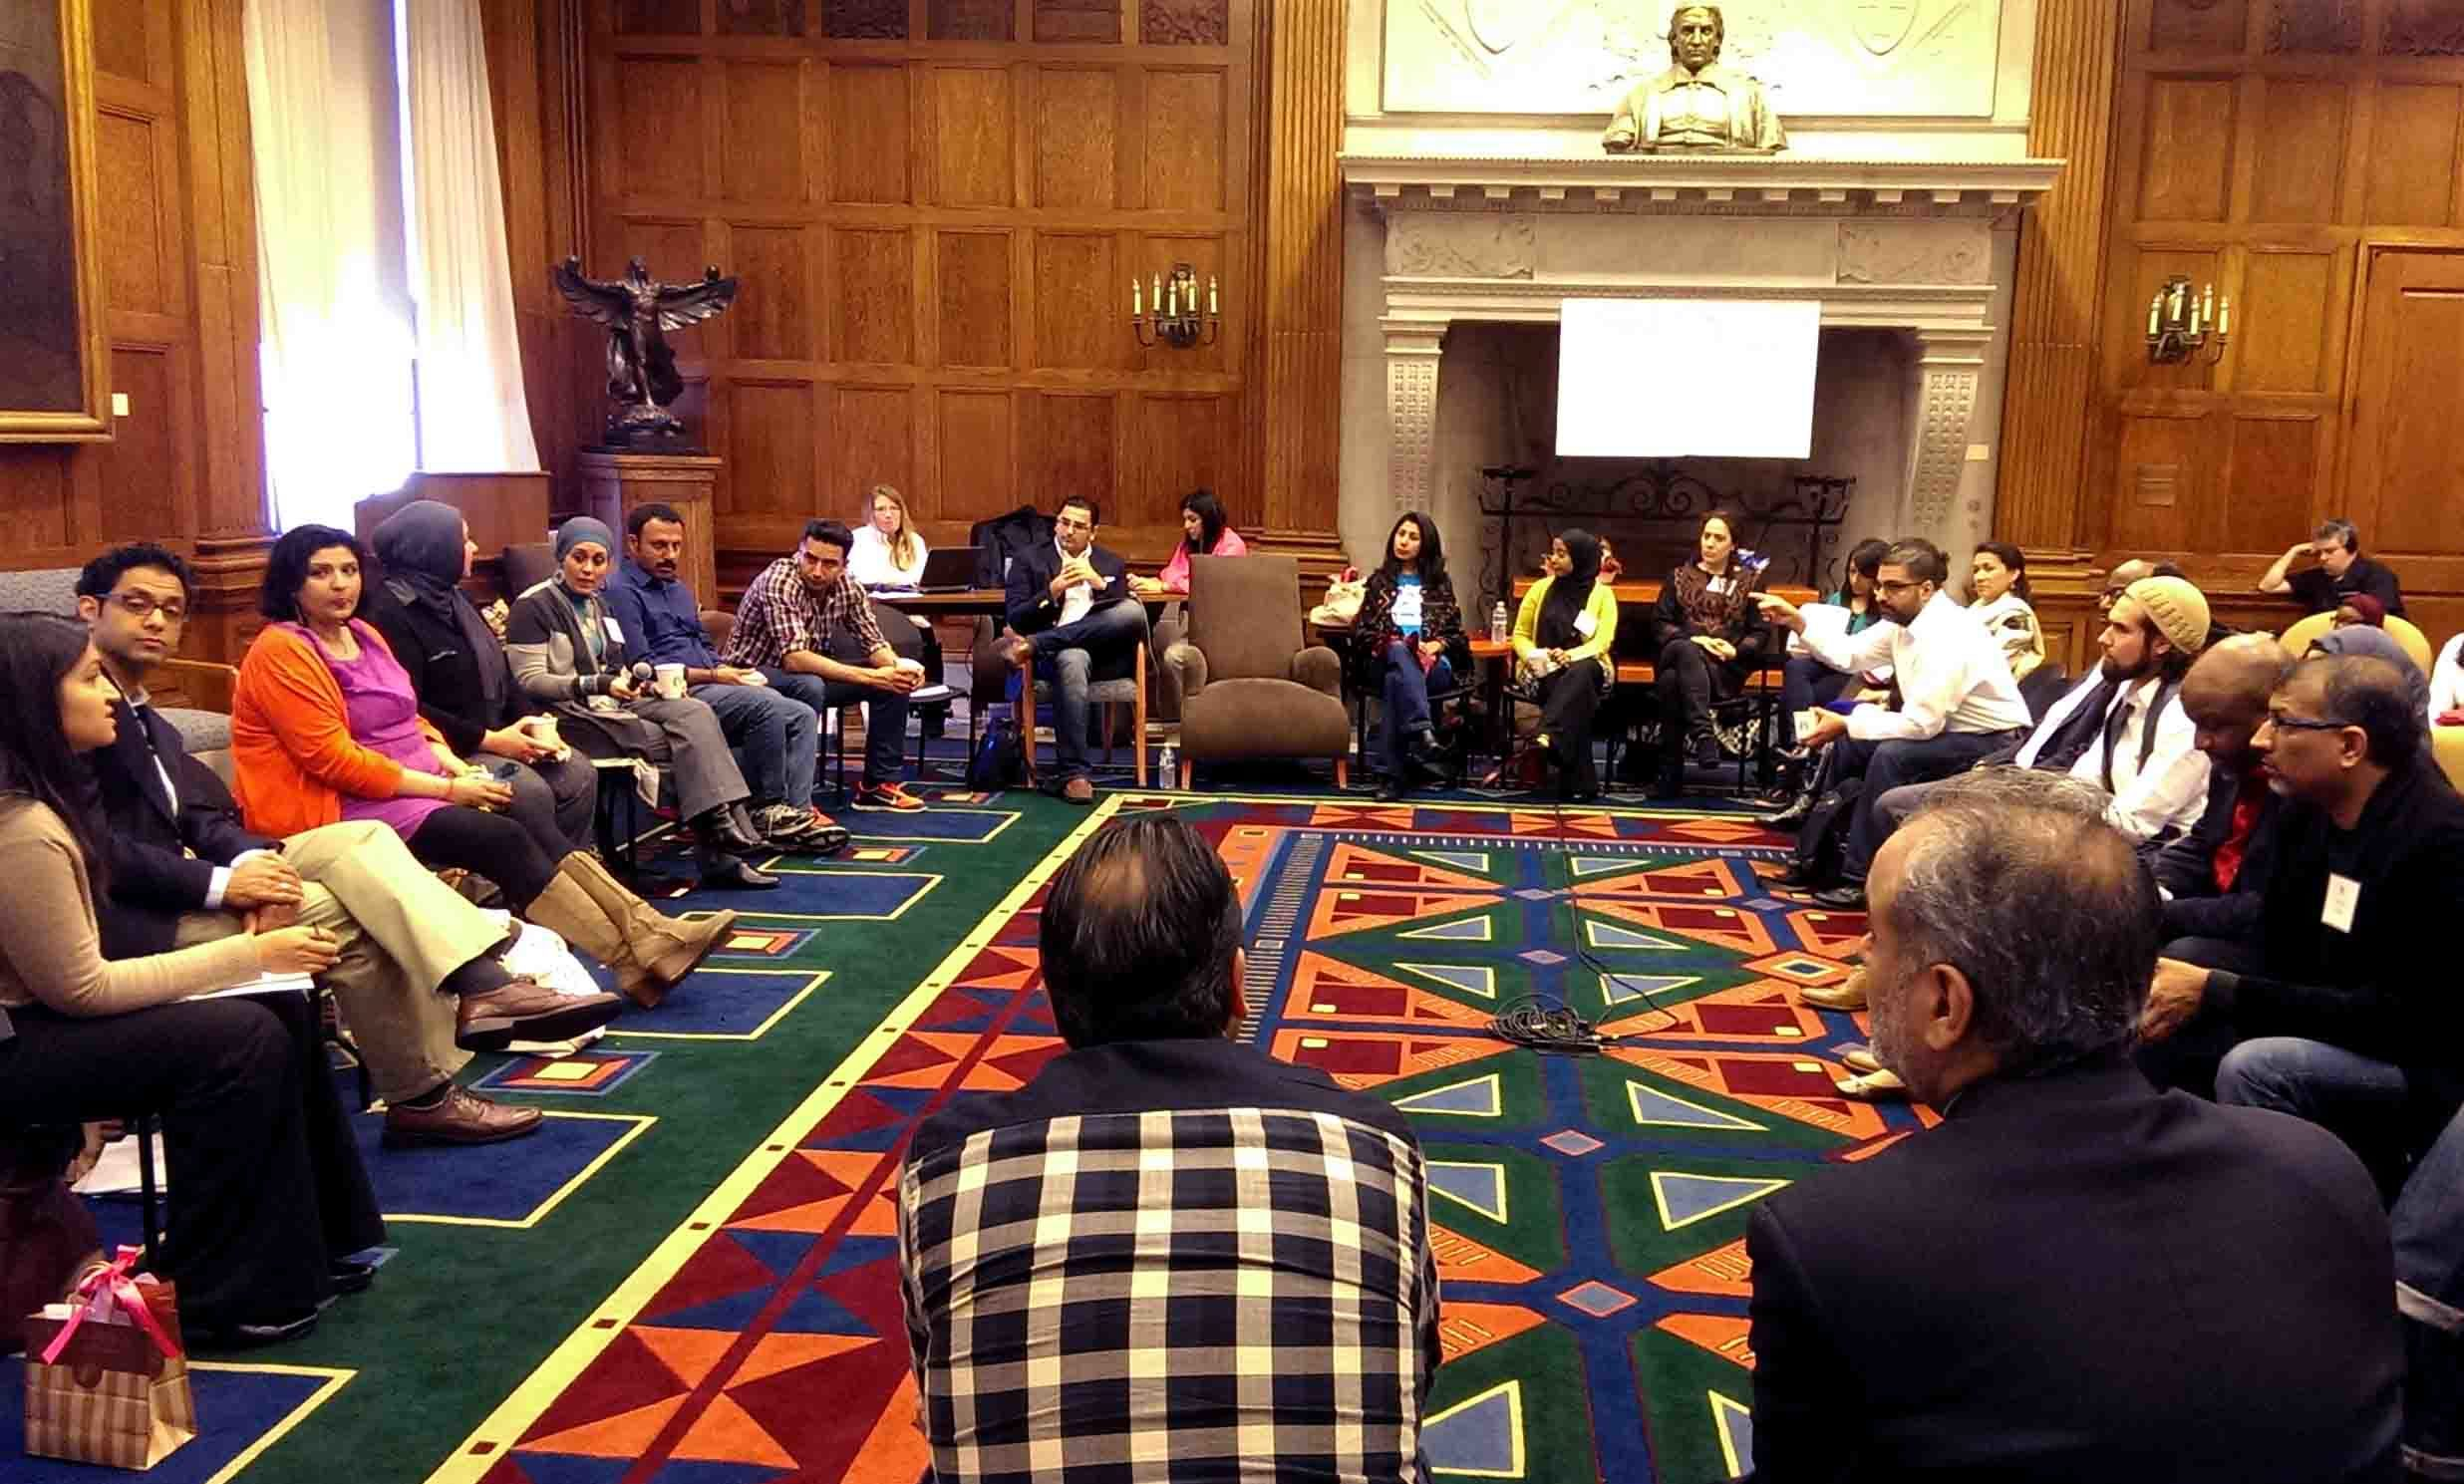 Attendees of the (Re)presenting American Muslim workshop sit in a circle discussing key topics